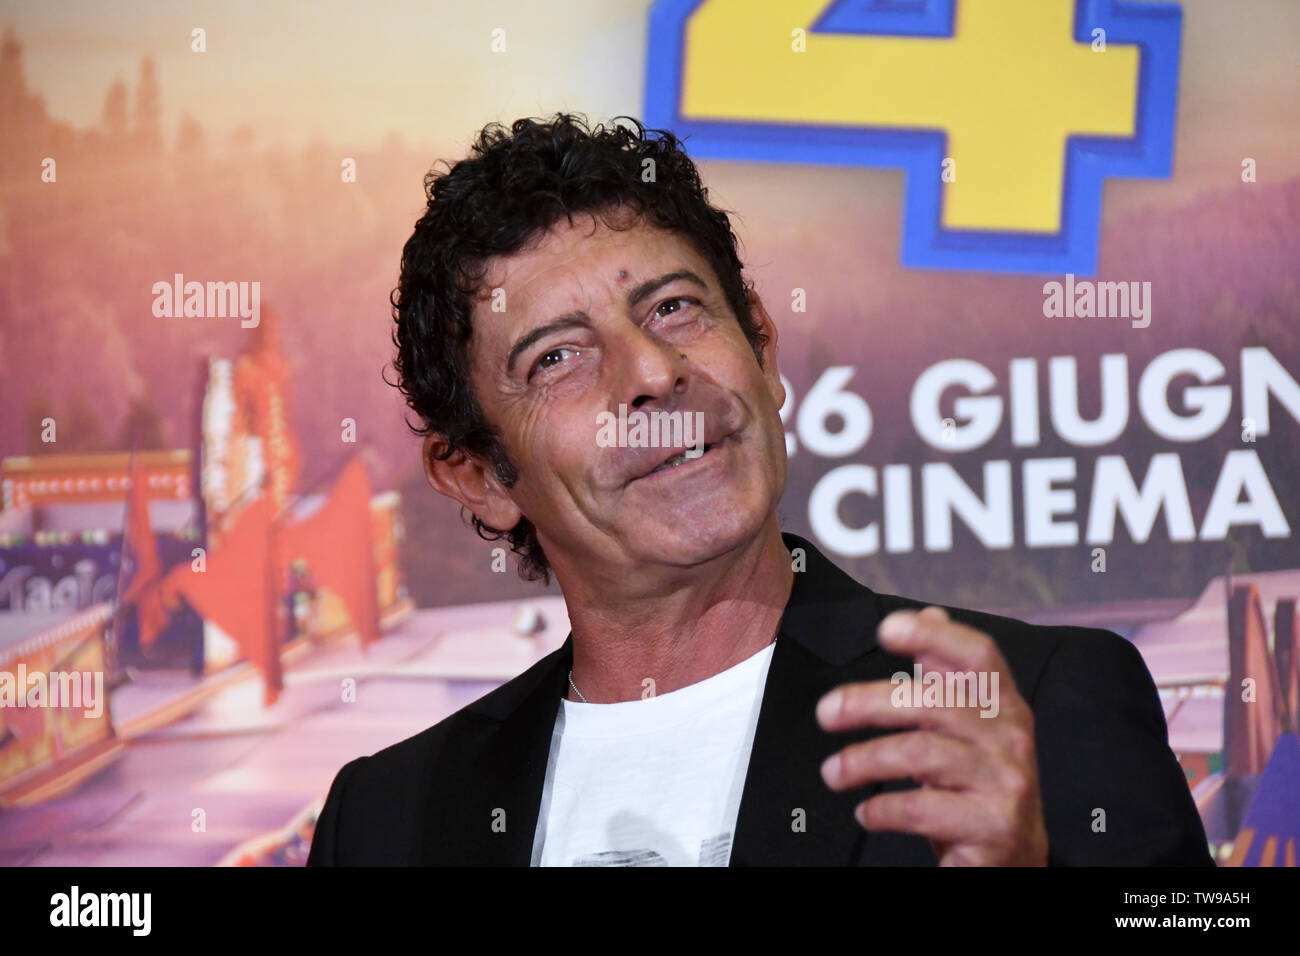 Rome 18 Giu 2019 hotel Parco dei Principi movie presentation TOY STORY 4 Luca Laurenti the Italian voice of  Forky Credit: Giuseppe Andidero - Stock Image